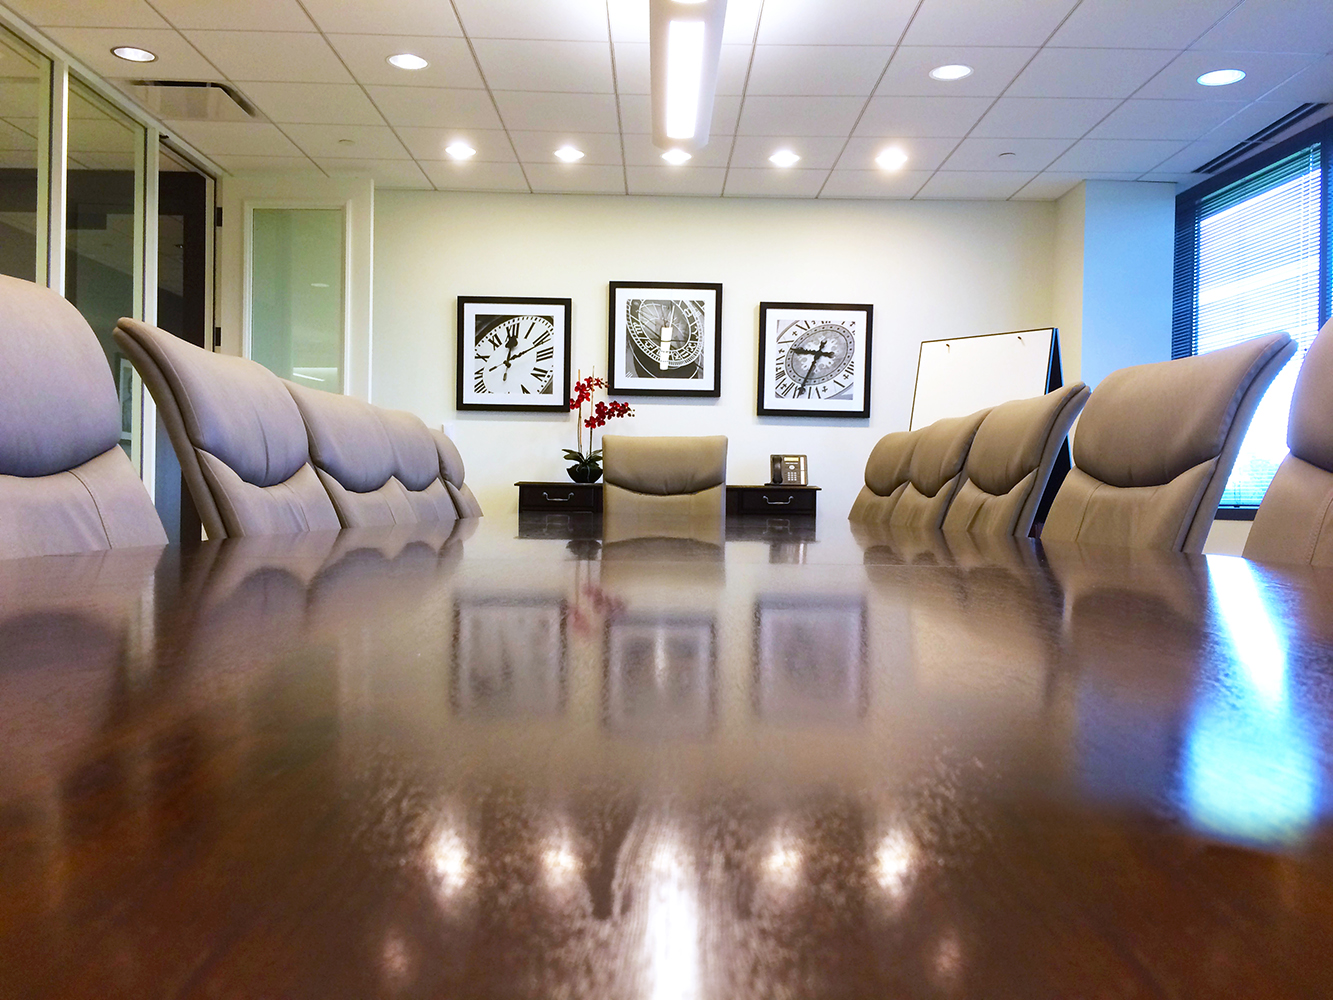 View of board room from table top of chairs, table and back wall with artwork hanging Architectural Photography